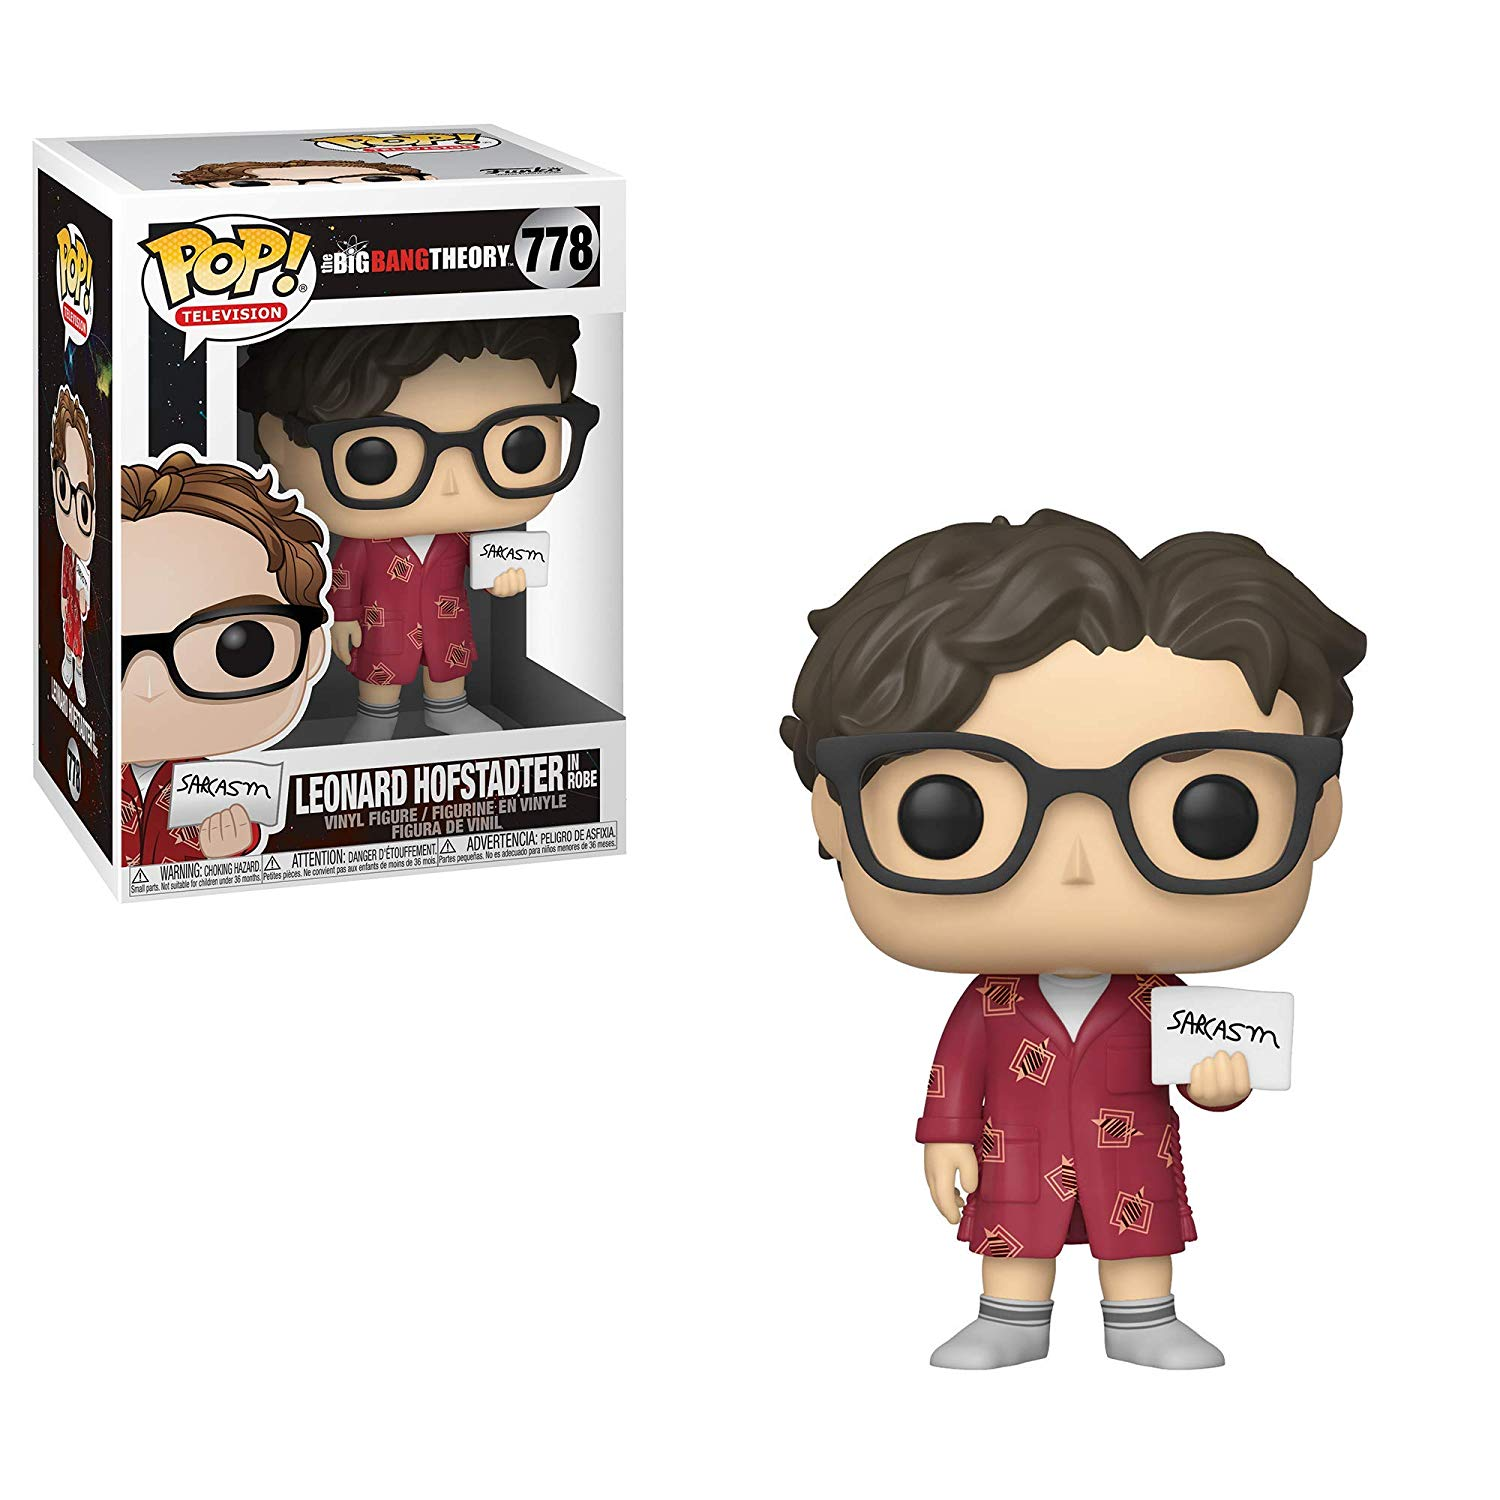 Pop! Television The Big Bang Theory Vinyl Figure Leonard Hofstadter in Robe #778